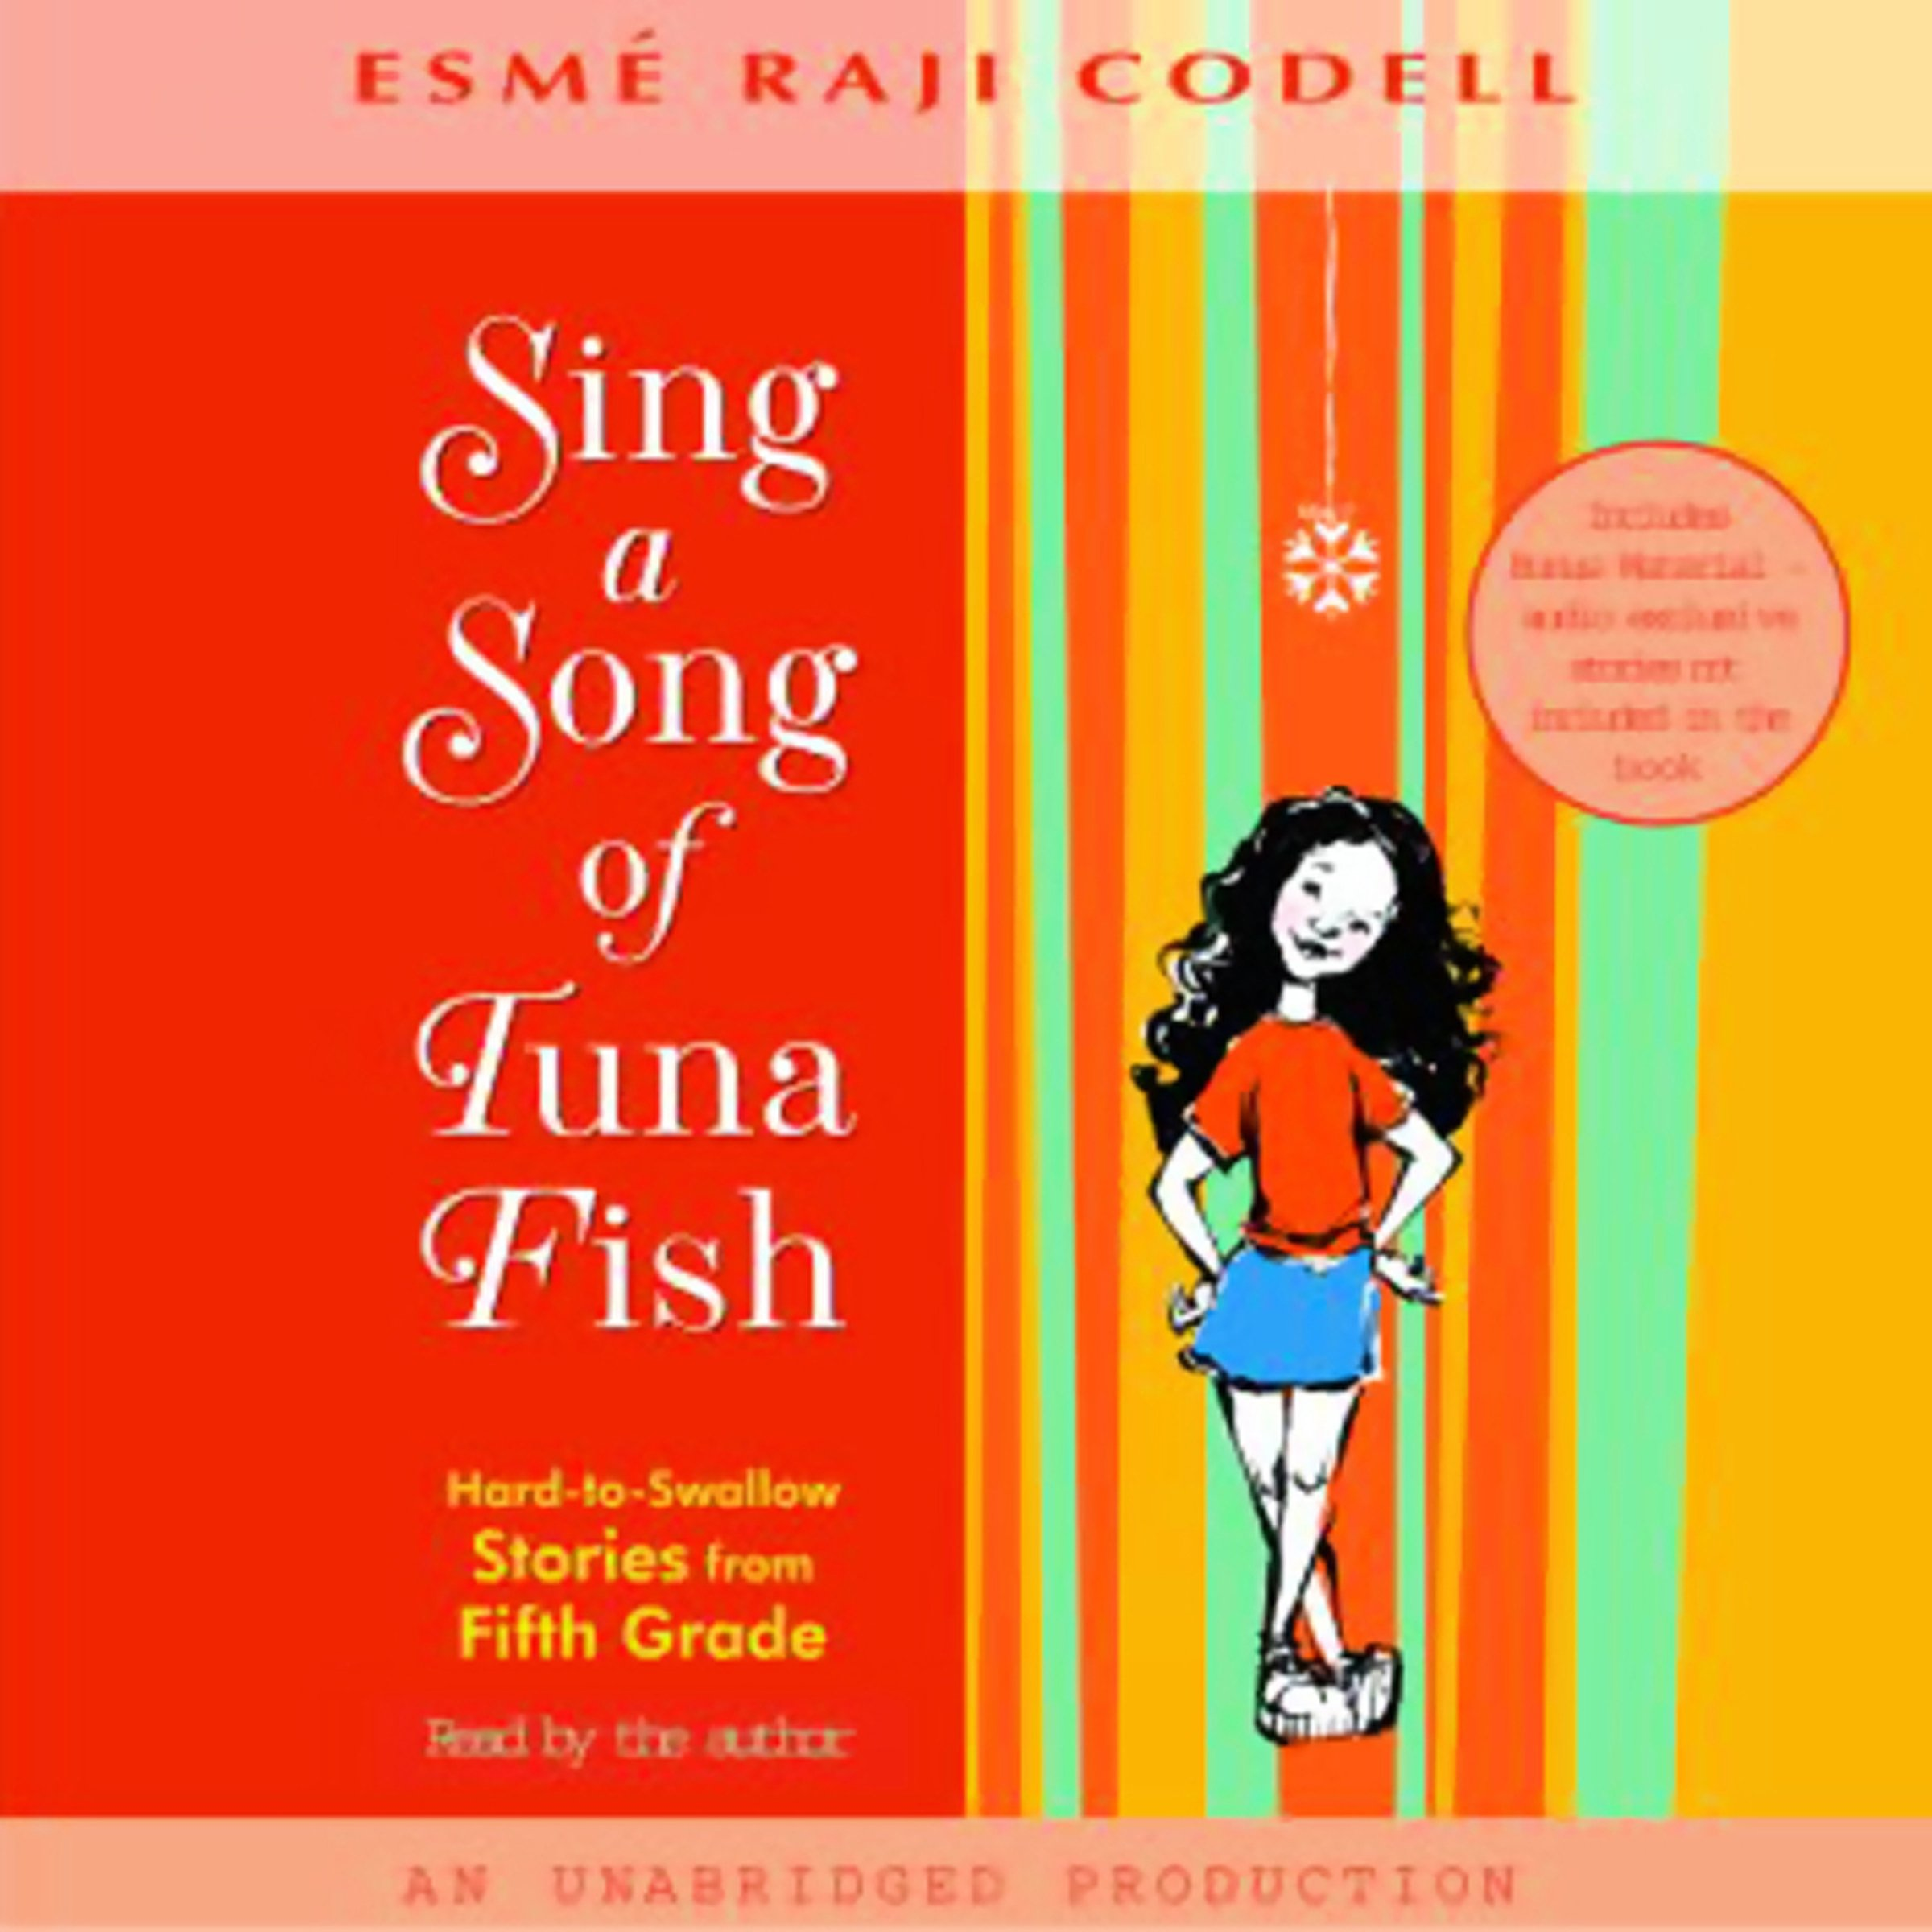 Sing a Song of Tuna Fish: Hard-to-Swallow Stories